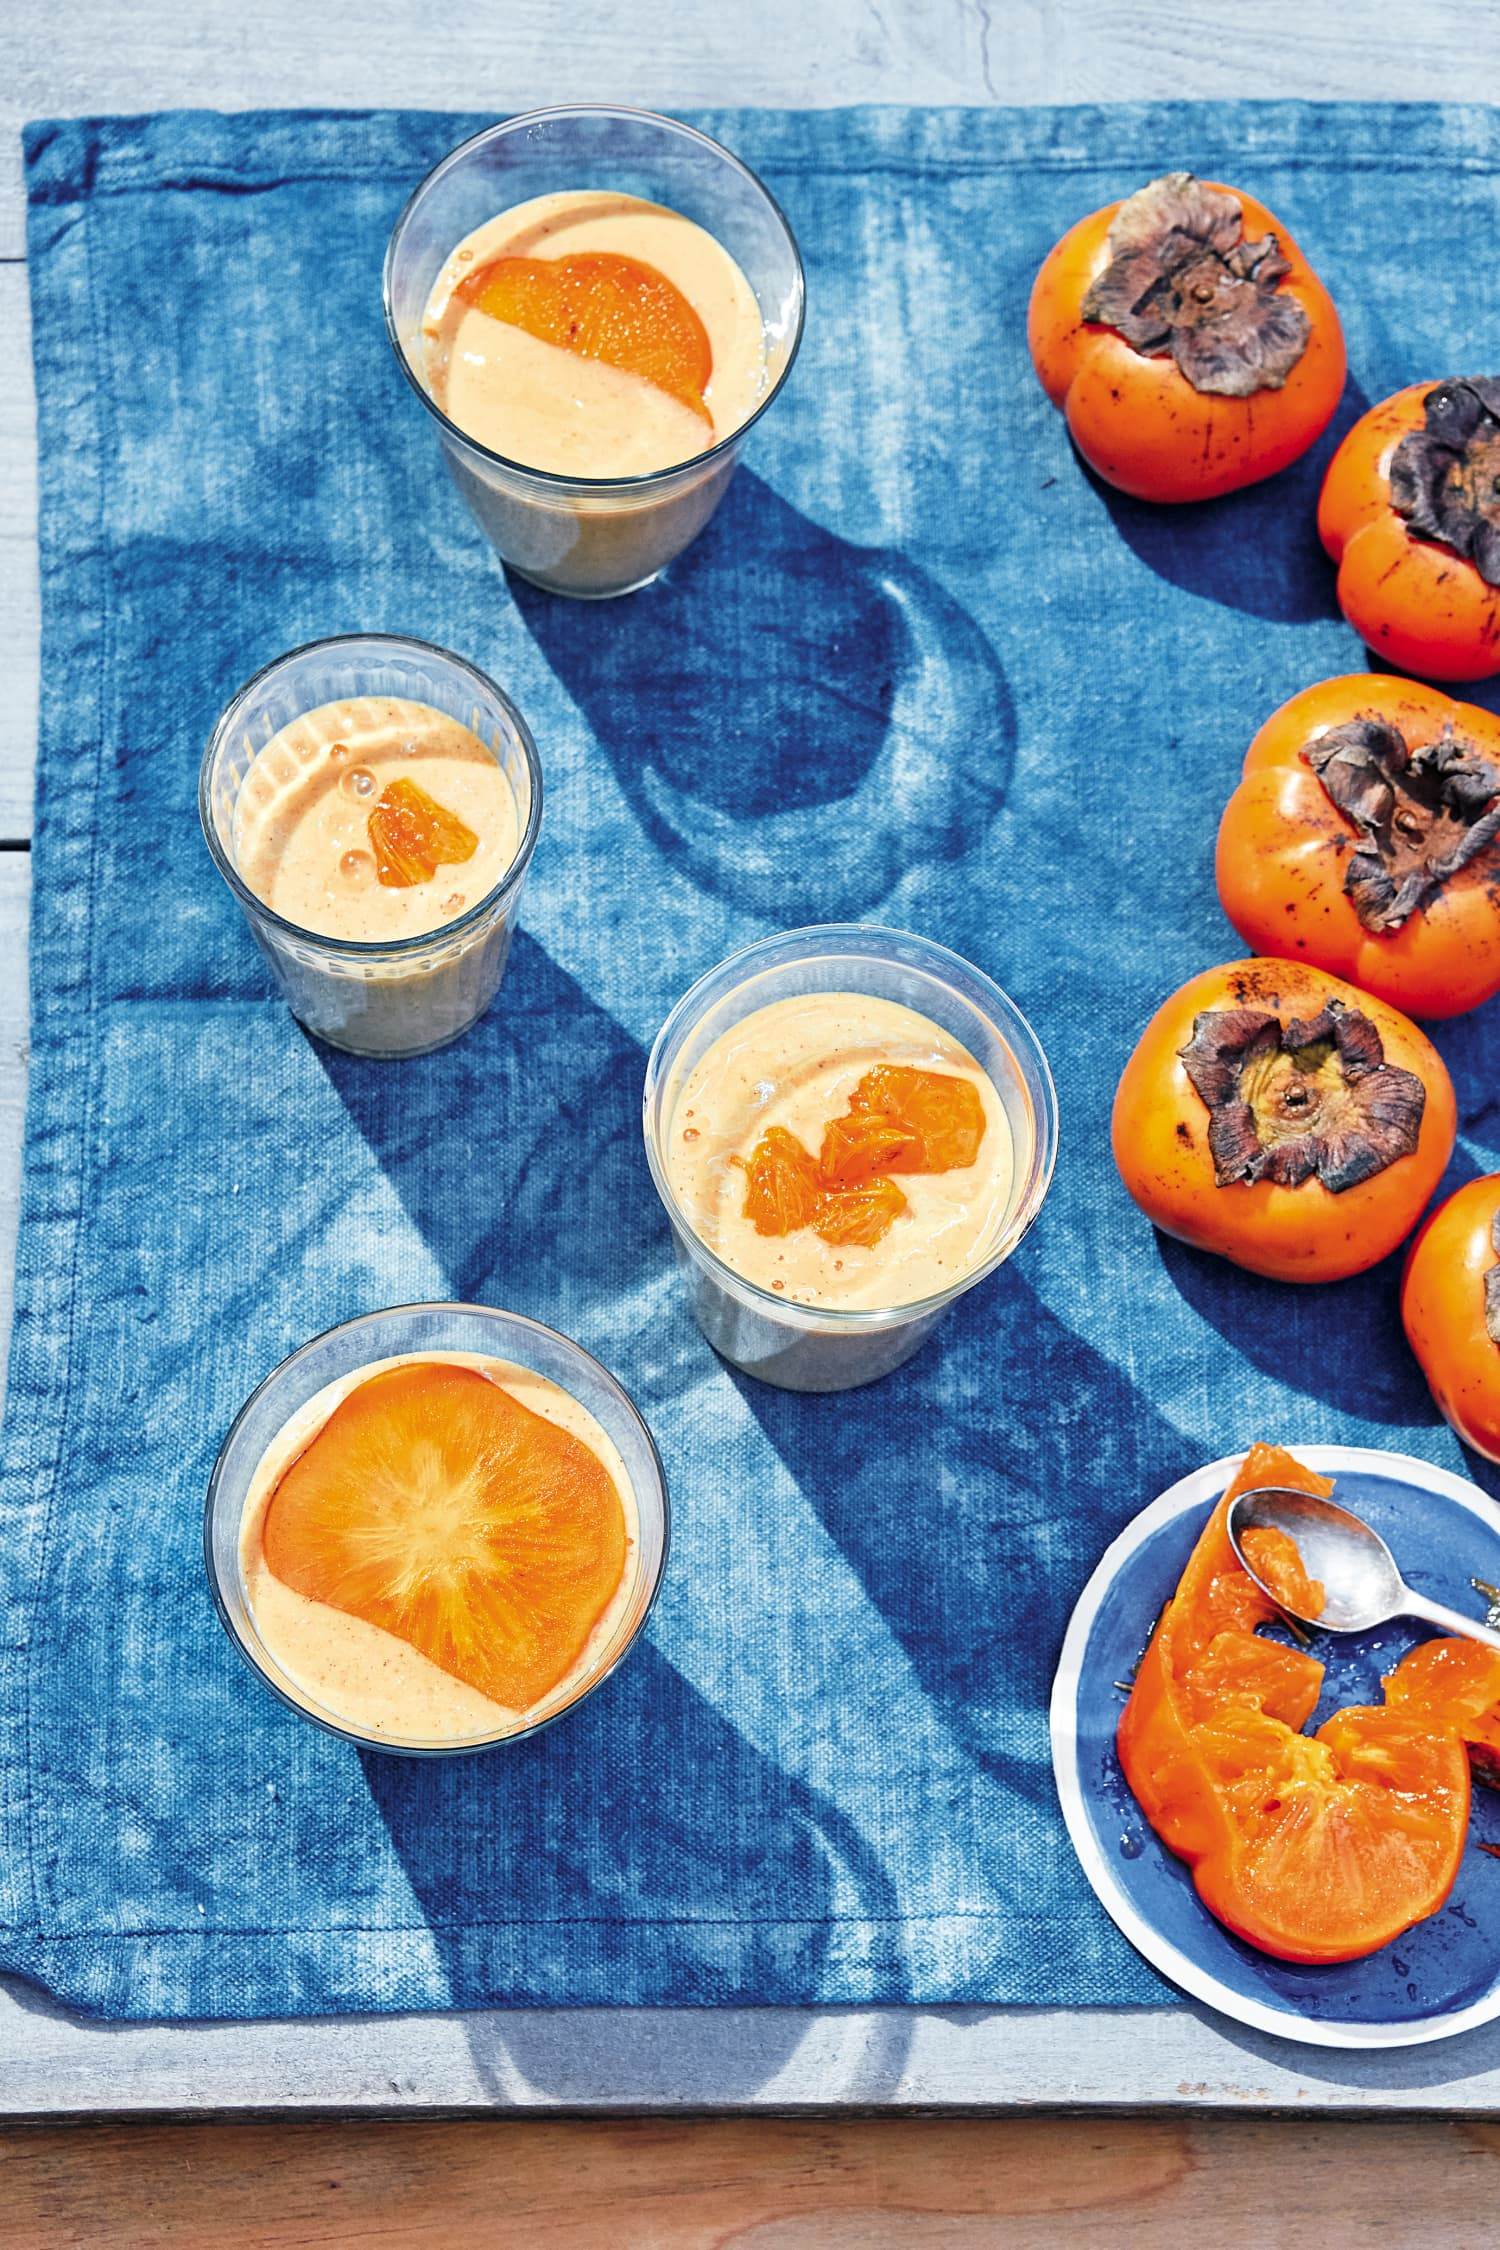 The Unexpected Fruit That Makes This Dairy-Free Smoothie Super-Creamy